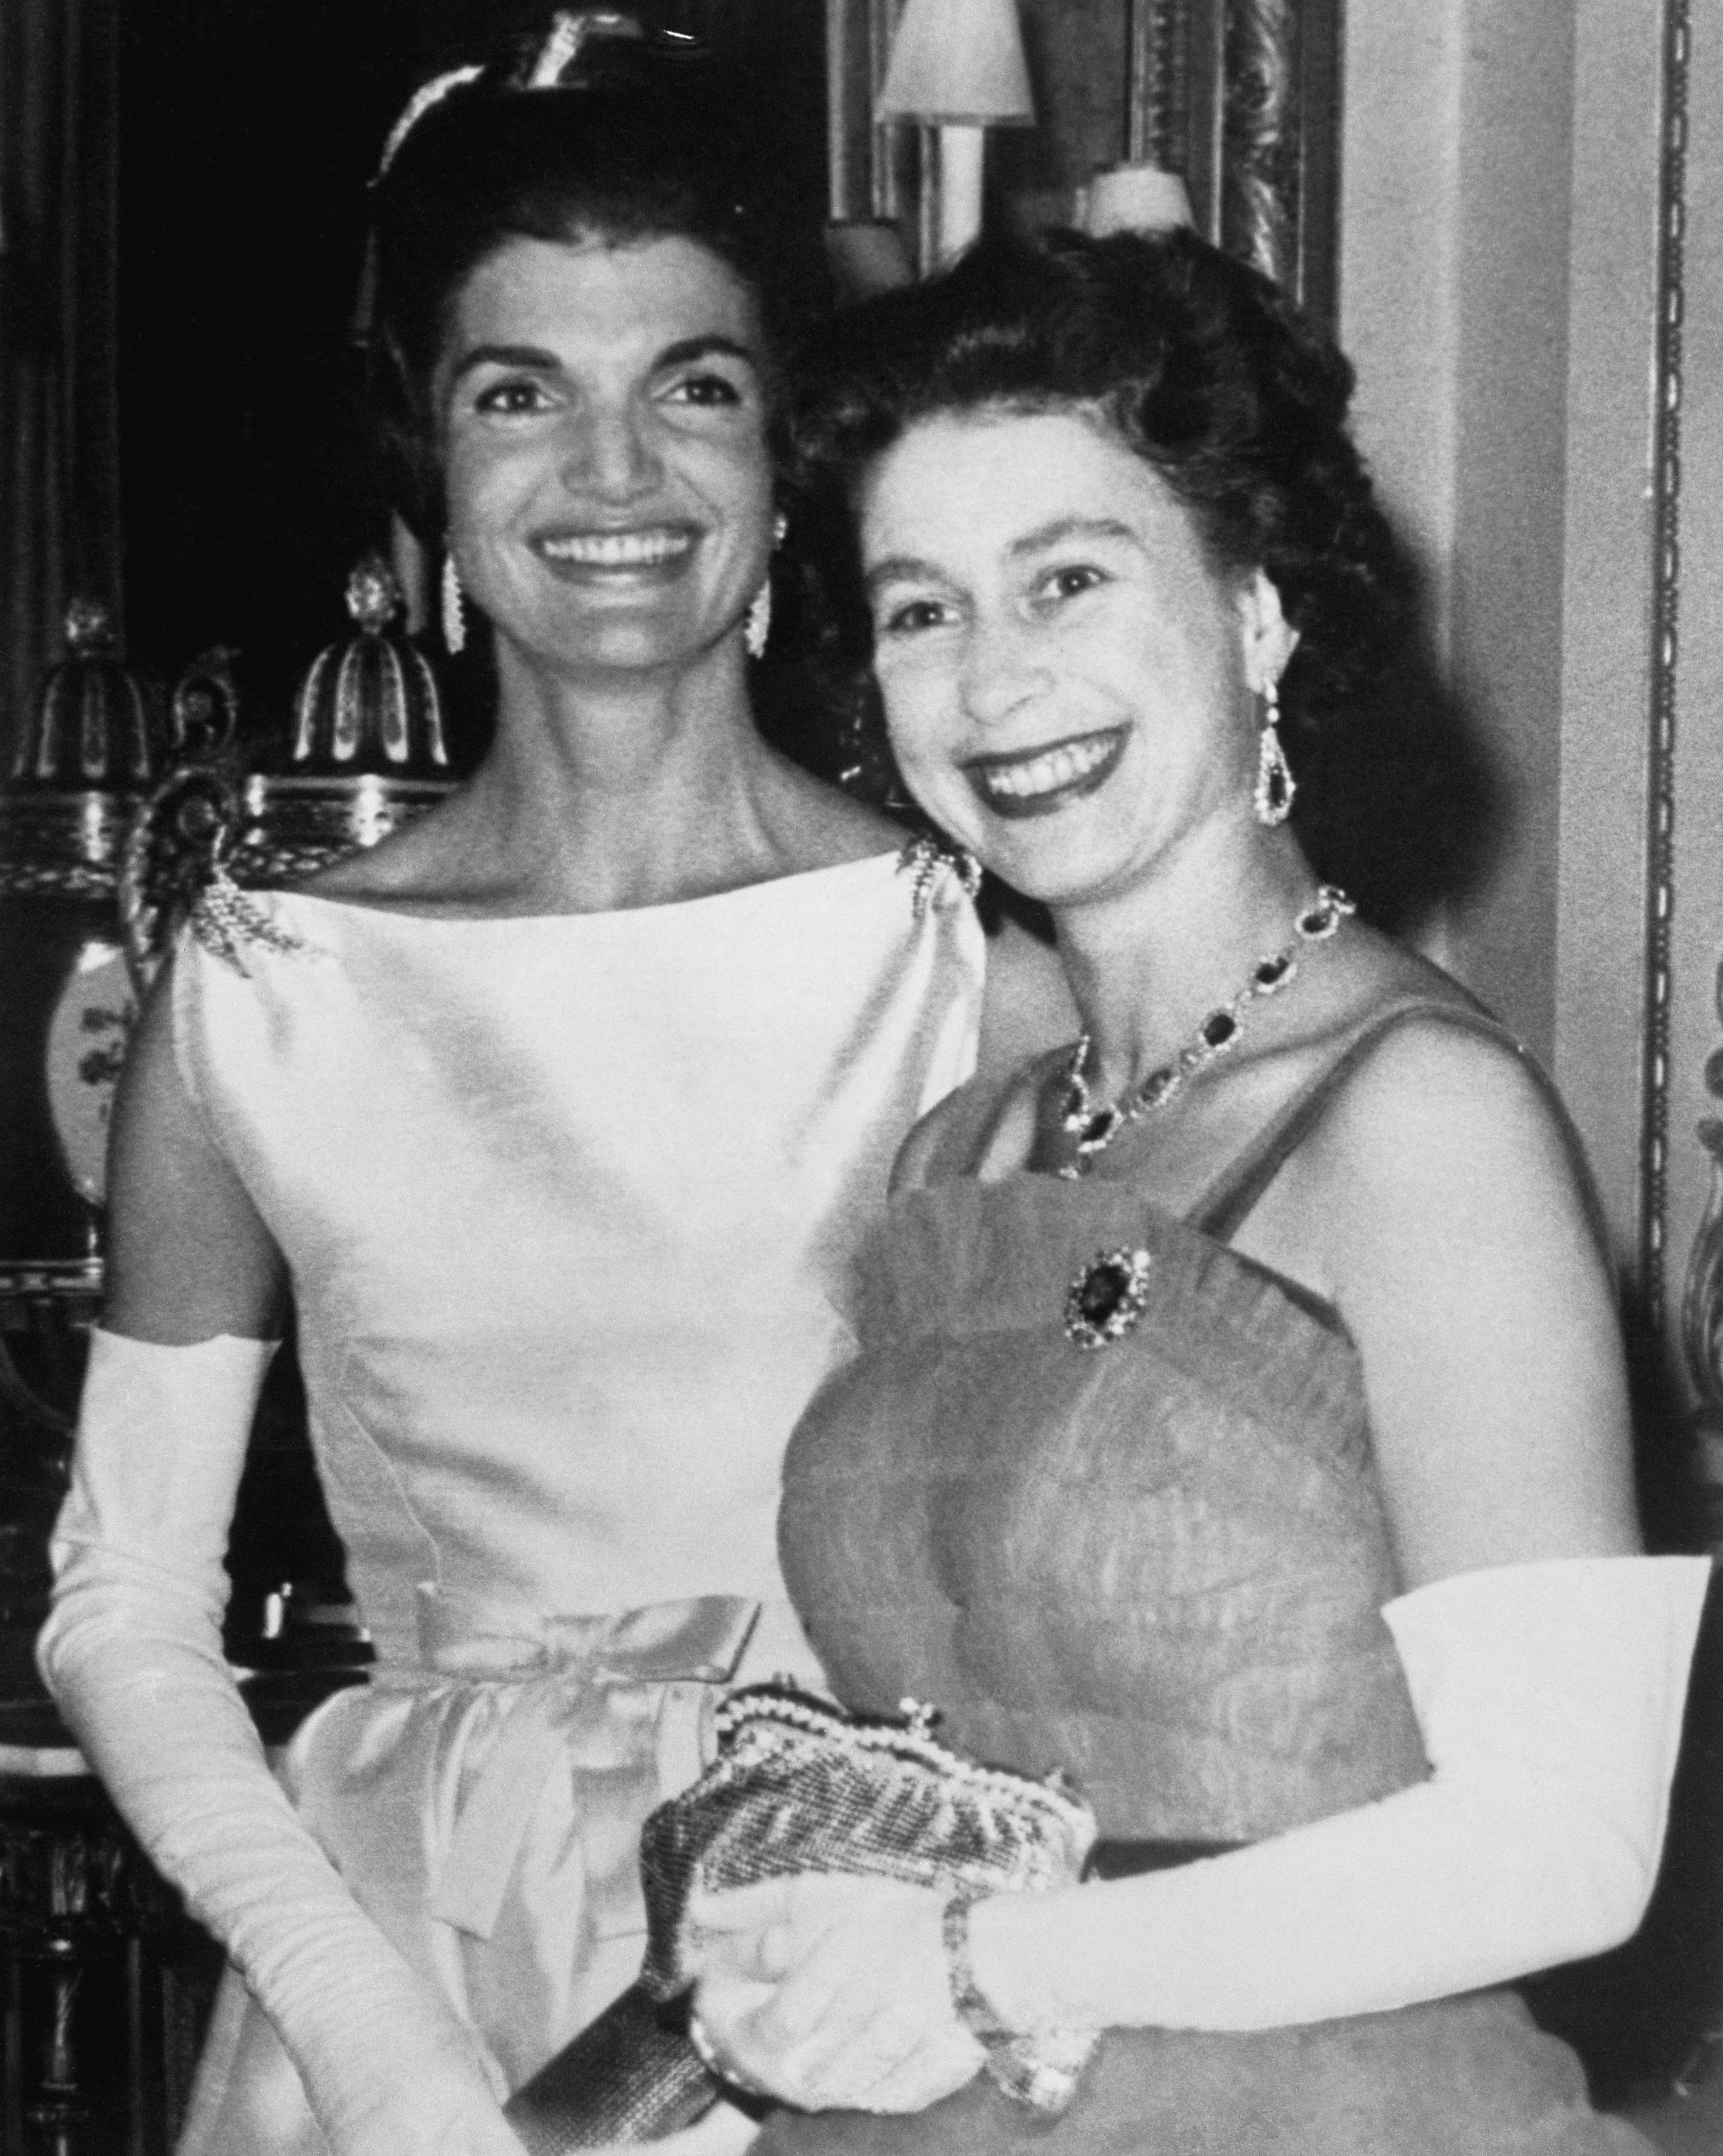 Jackie Kennedy and Queen Elizabeth pose for photos during an American state visit to Buckingham Palace. The event was the first time an American president dined at the Palace since 1918 and was even depicted on Season 2 of The Crown.